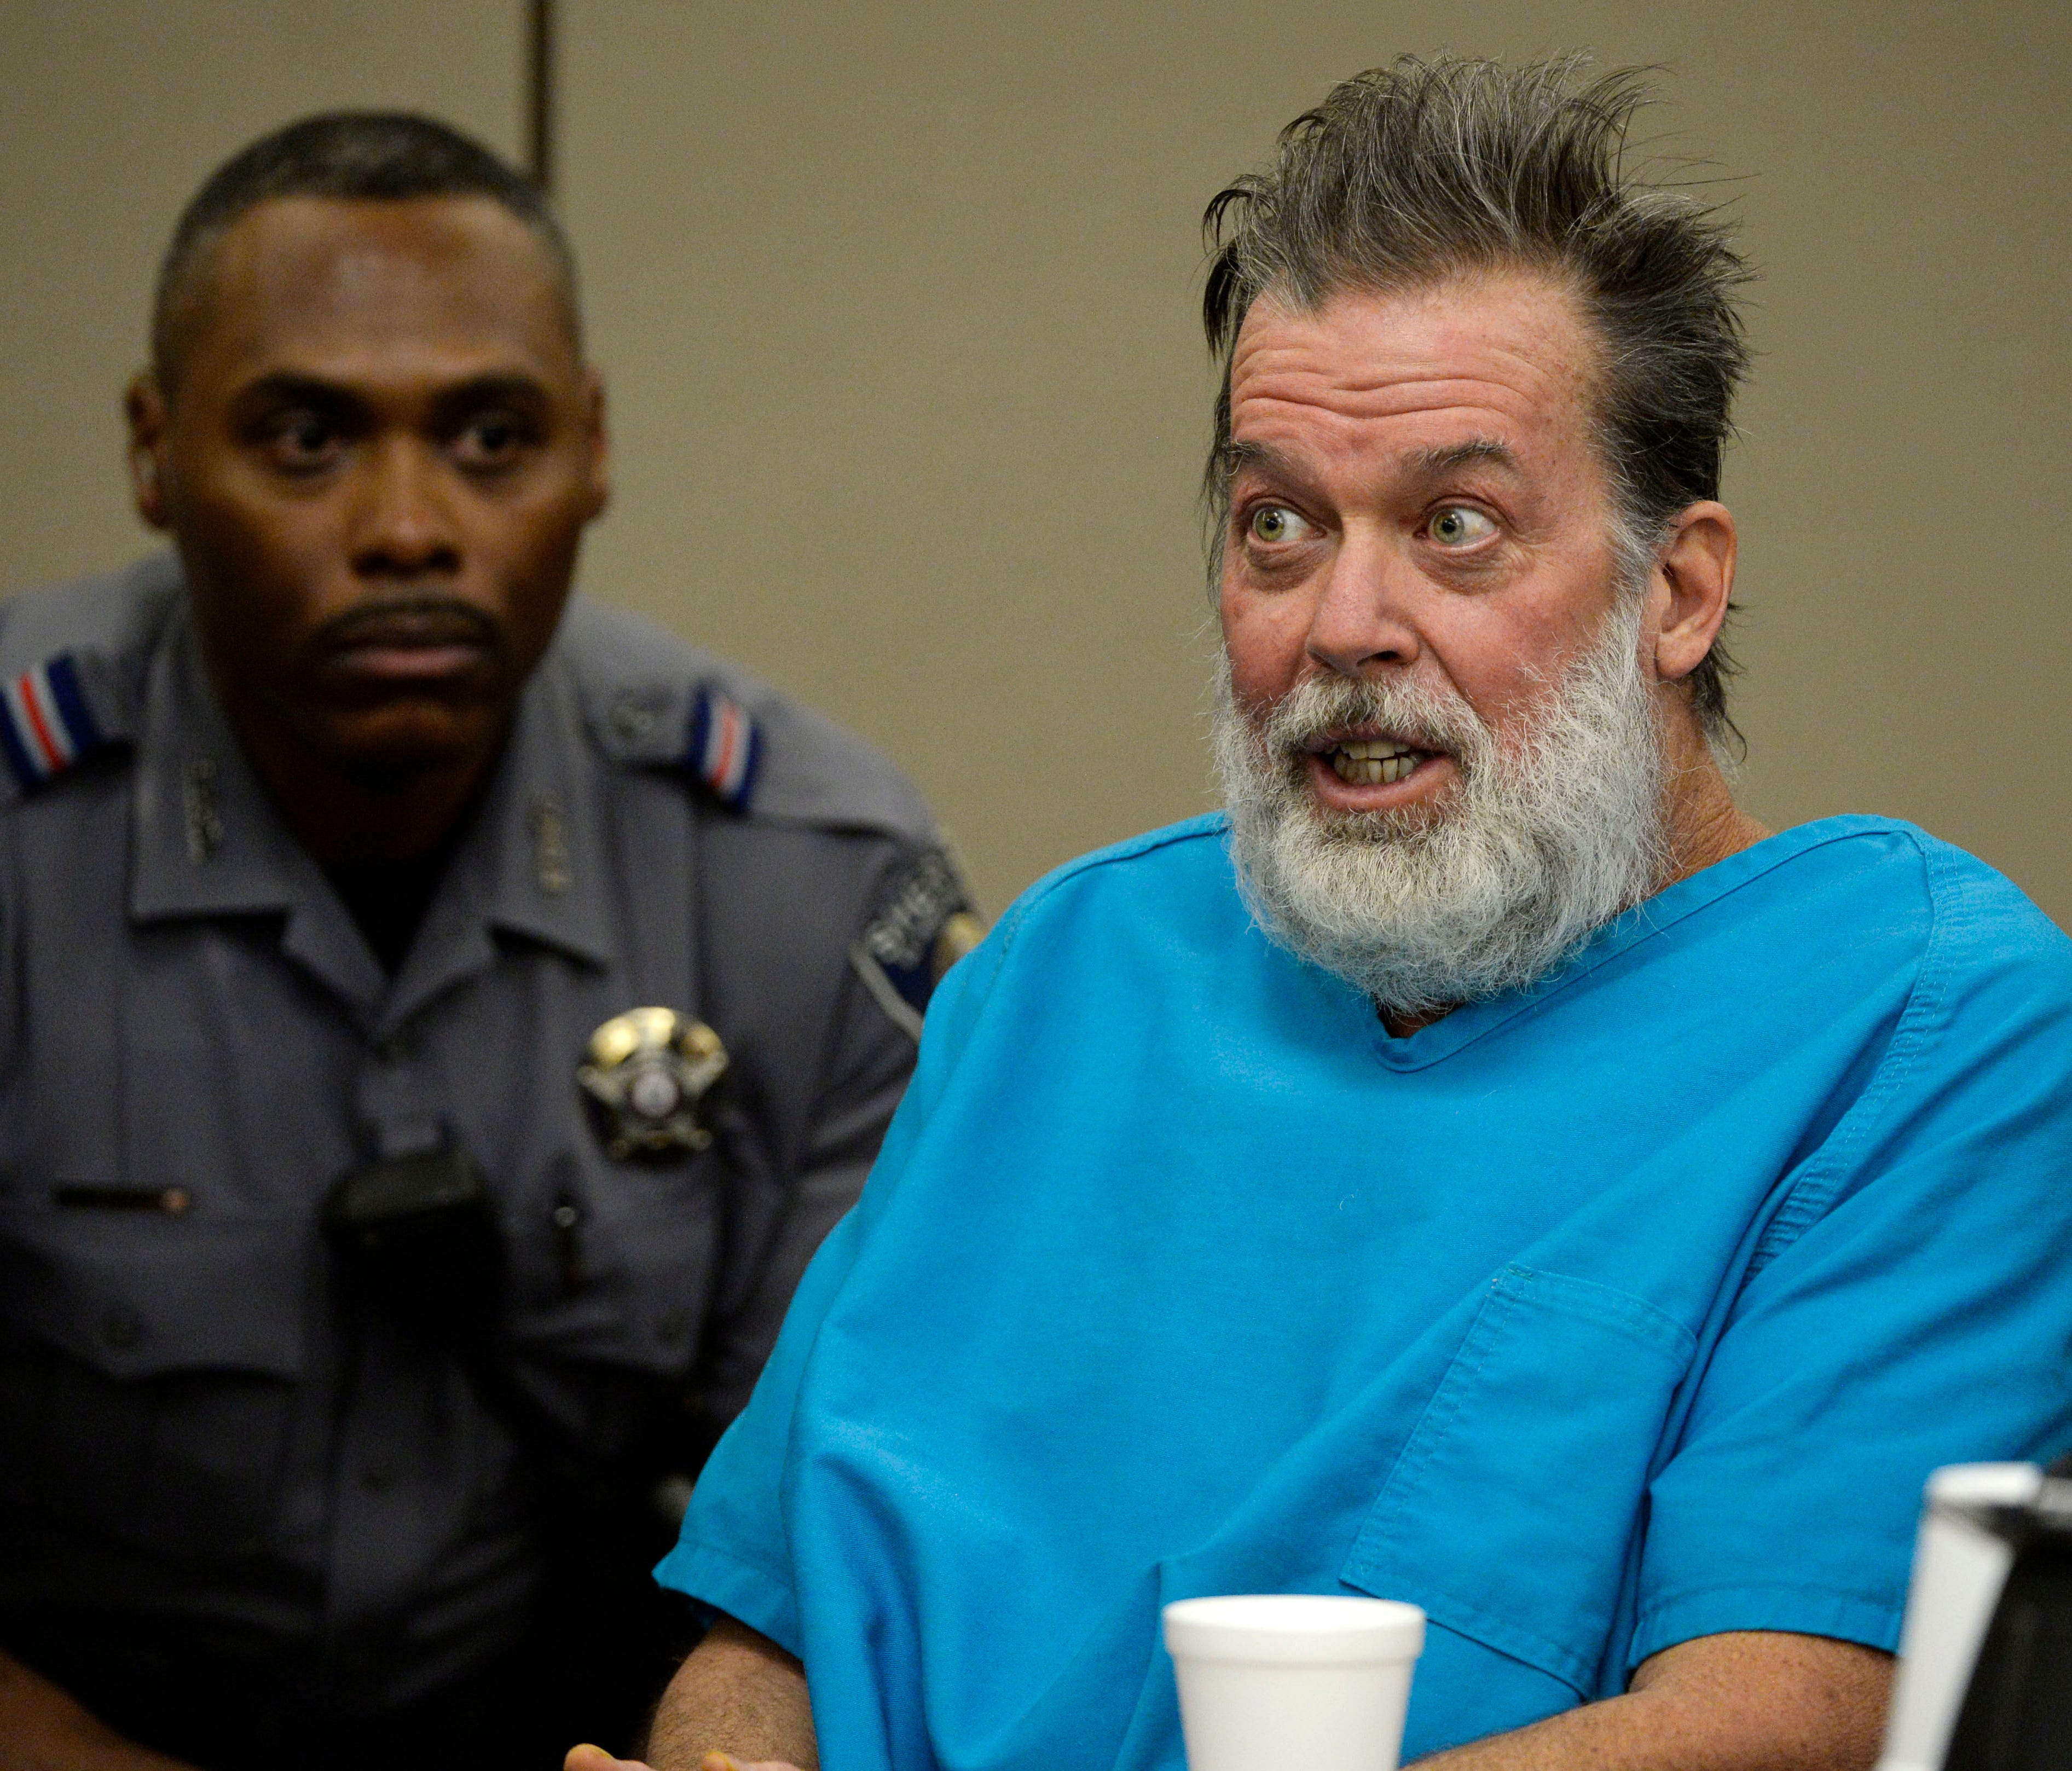 Colorado Springs Shooting At Planned Parenthood: Planned Parenthood Shooting Suspect Found Incompetent To